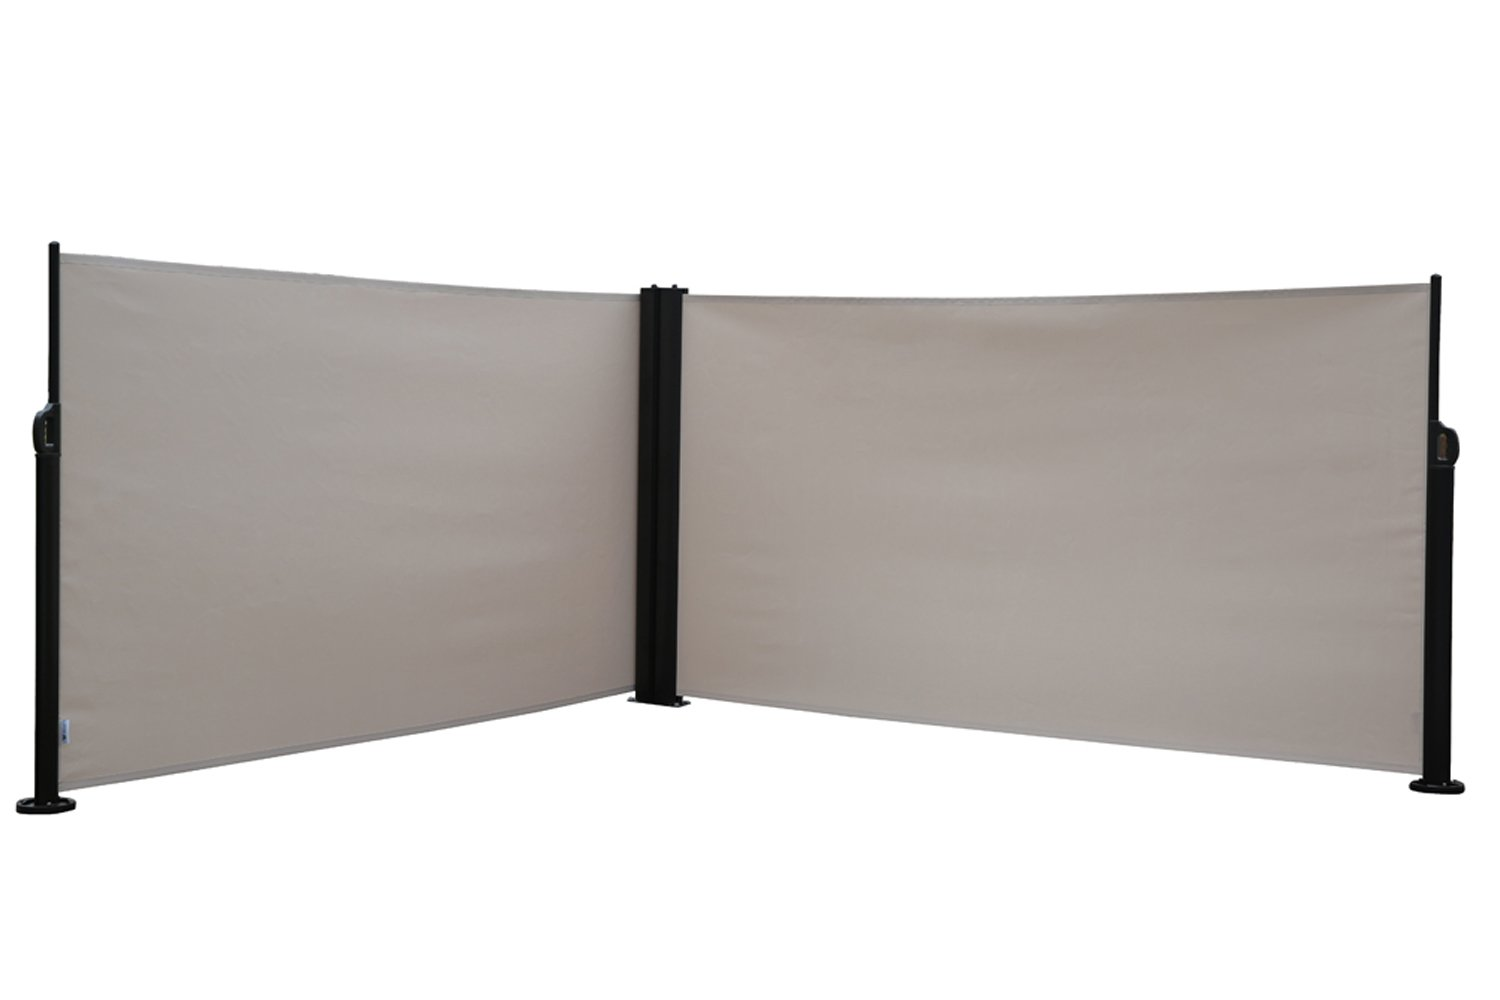 Abba Patio Retractable Double Folding Screen Fence Privacy Divider with Steel Pole, 5.2'H, Beige